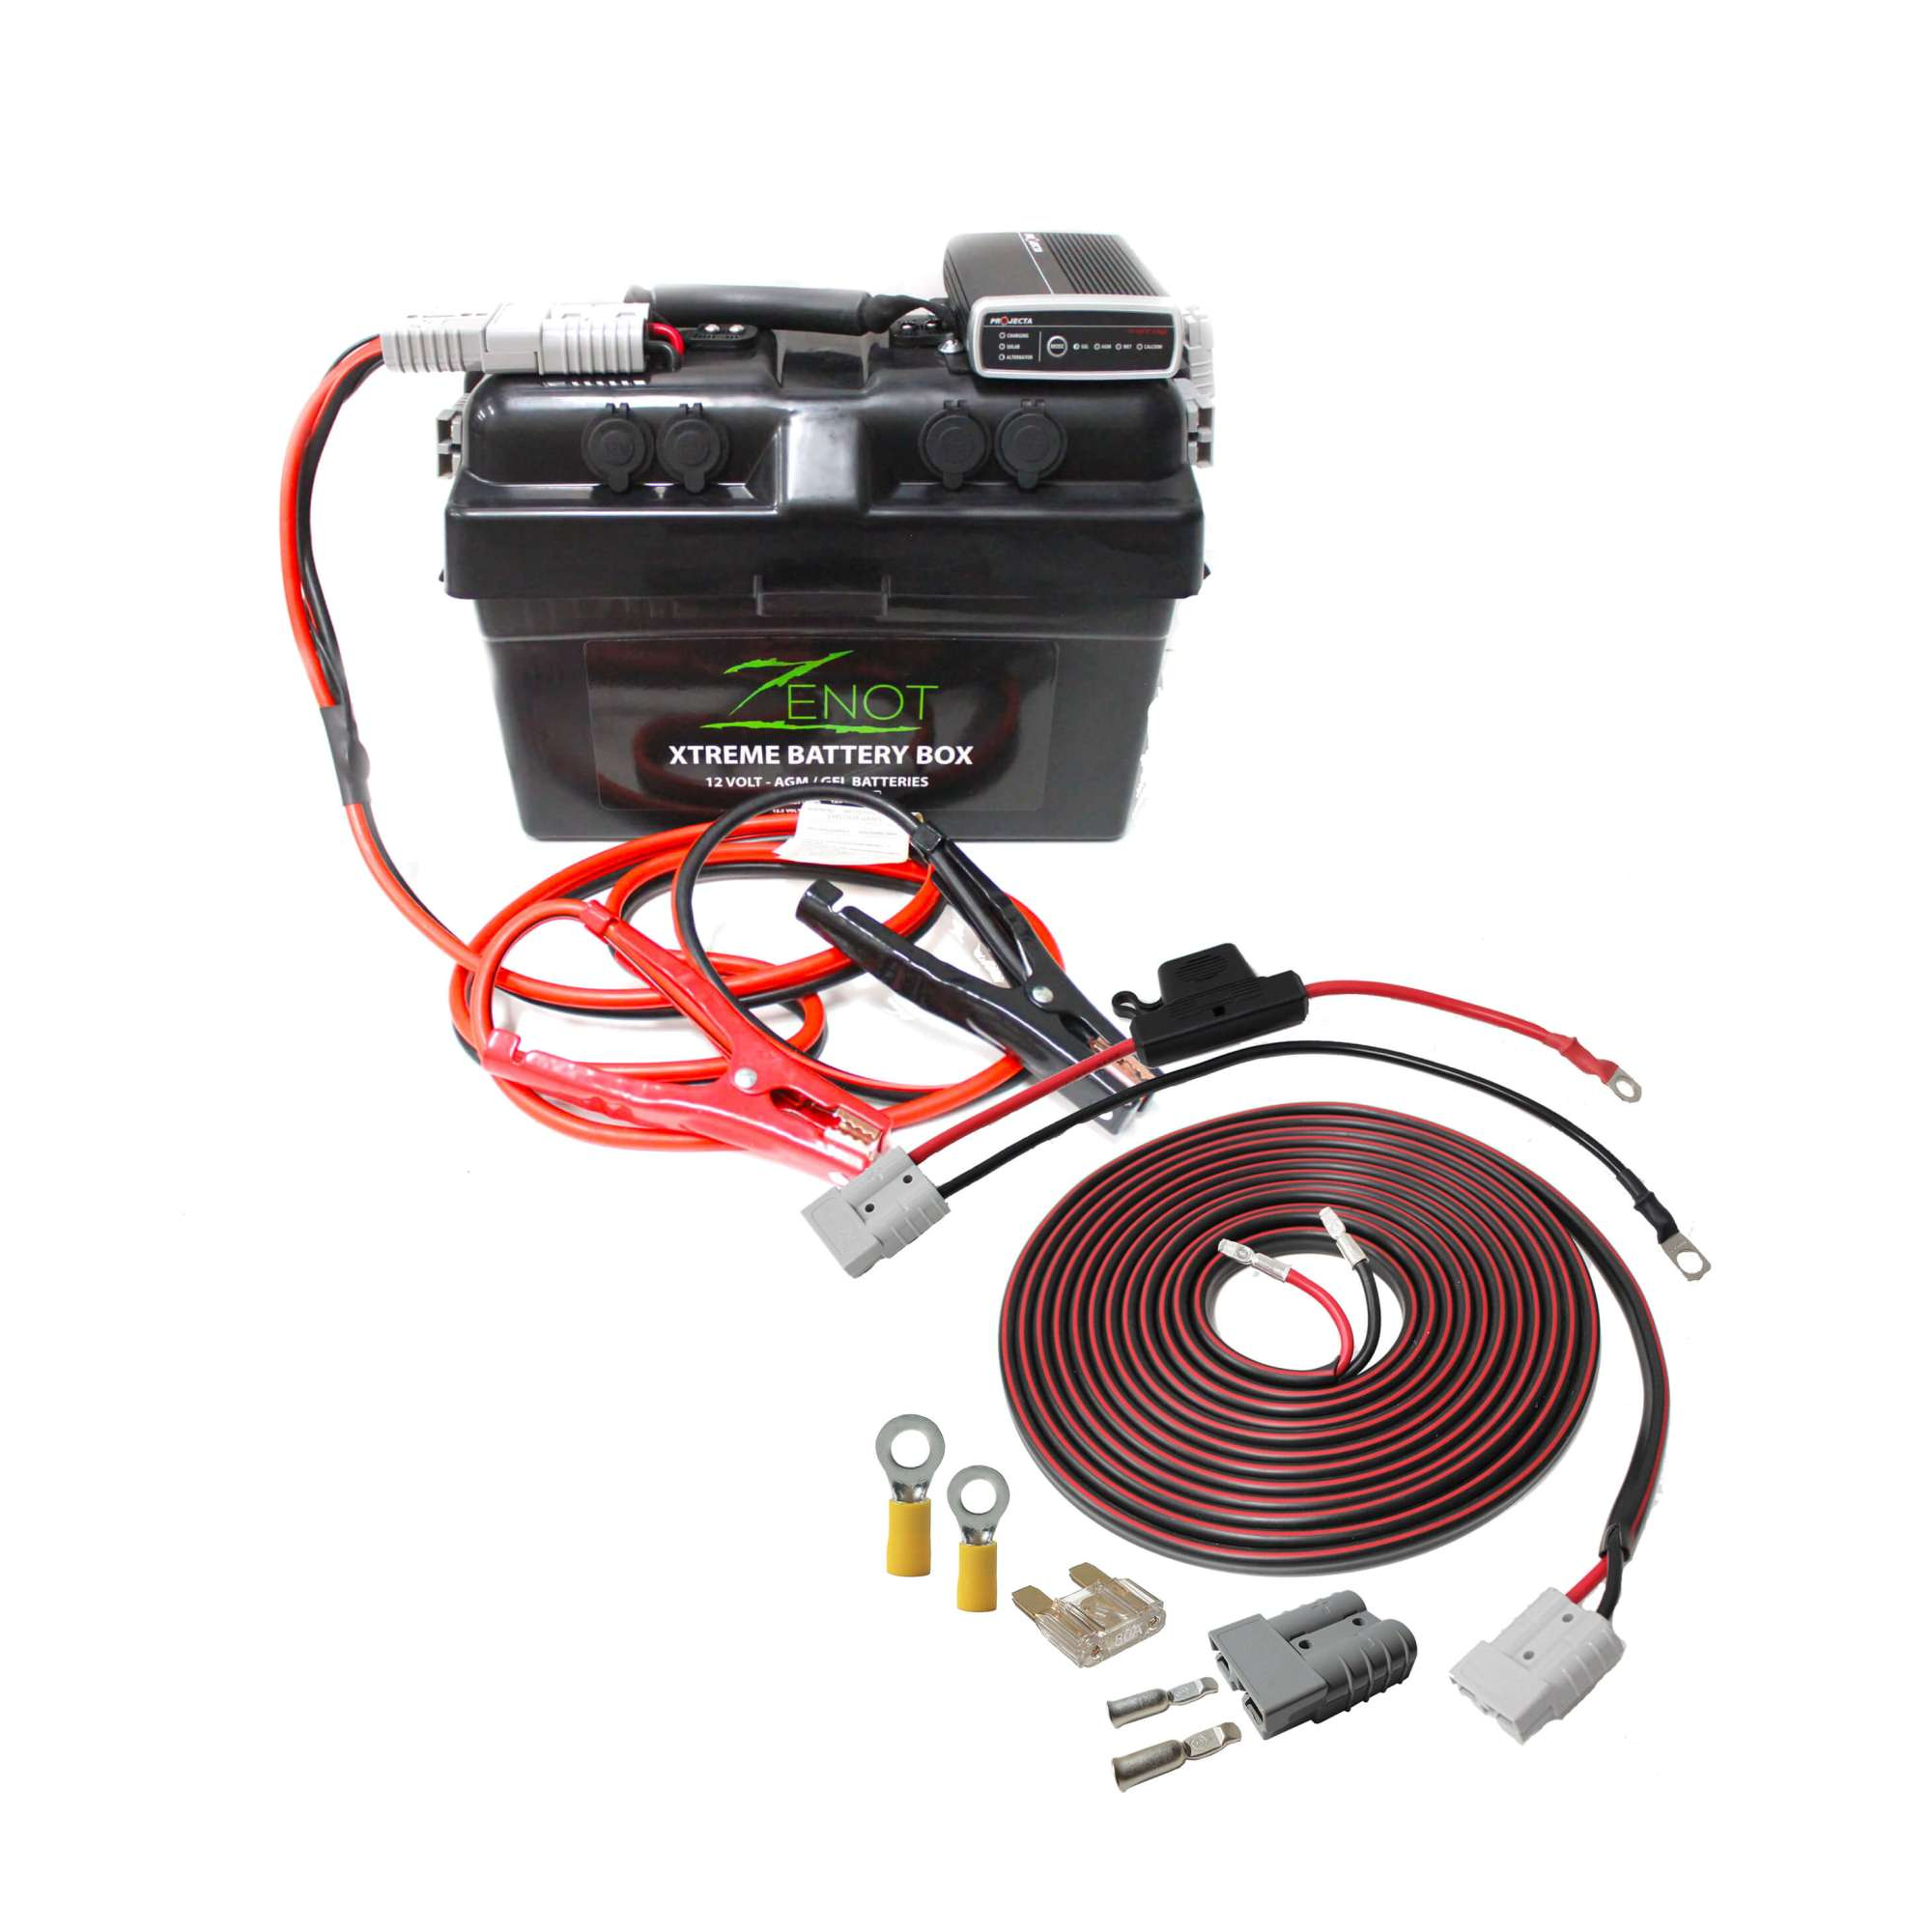 hight resolution of quality built zenot extreme battery box with dc dc charger jump starter wiring kit all 12 volt